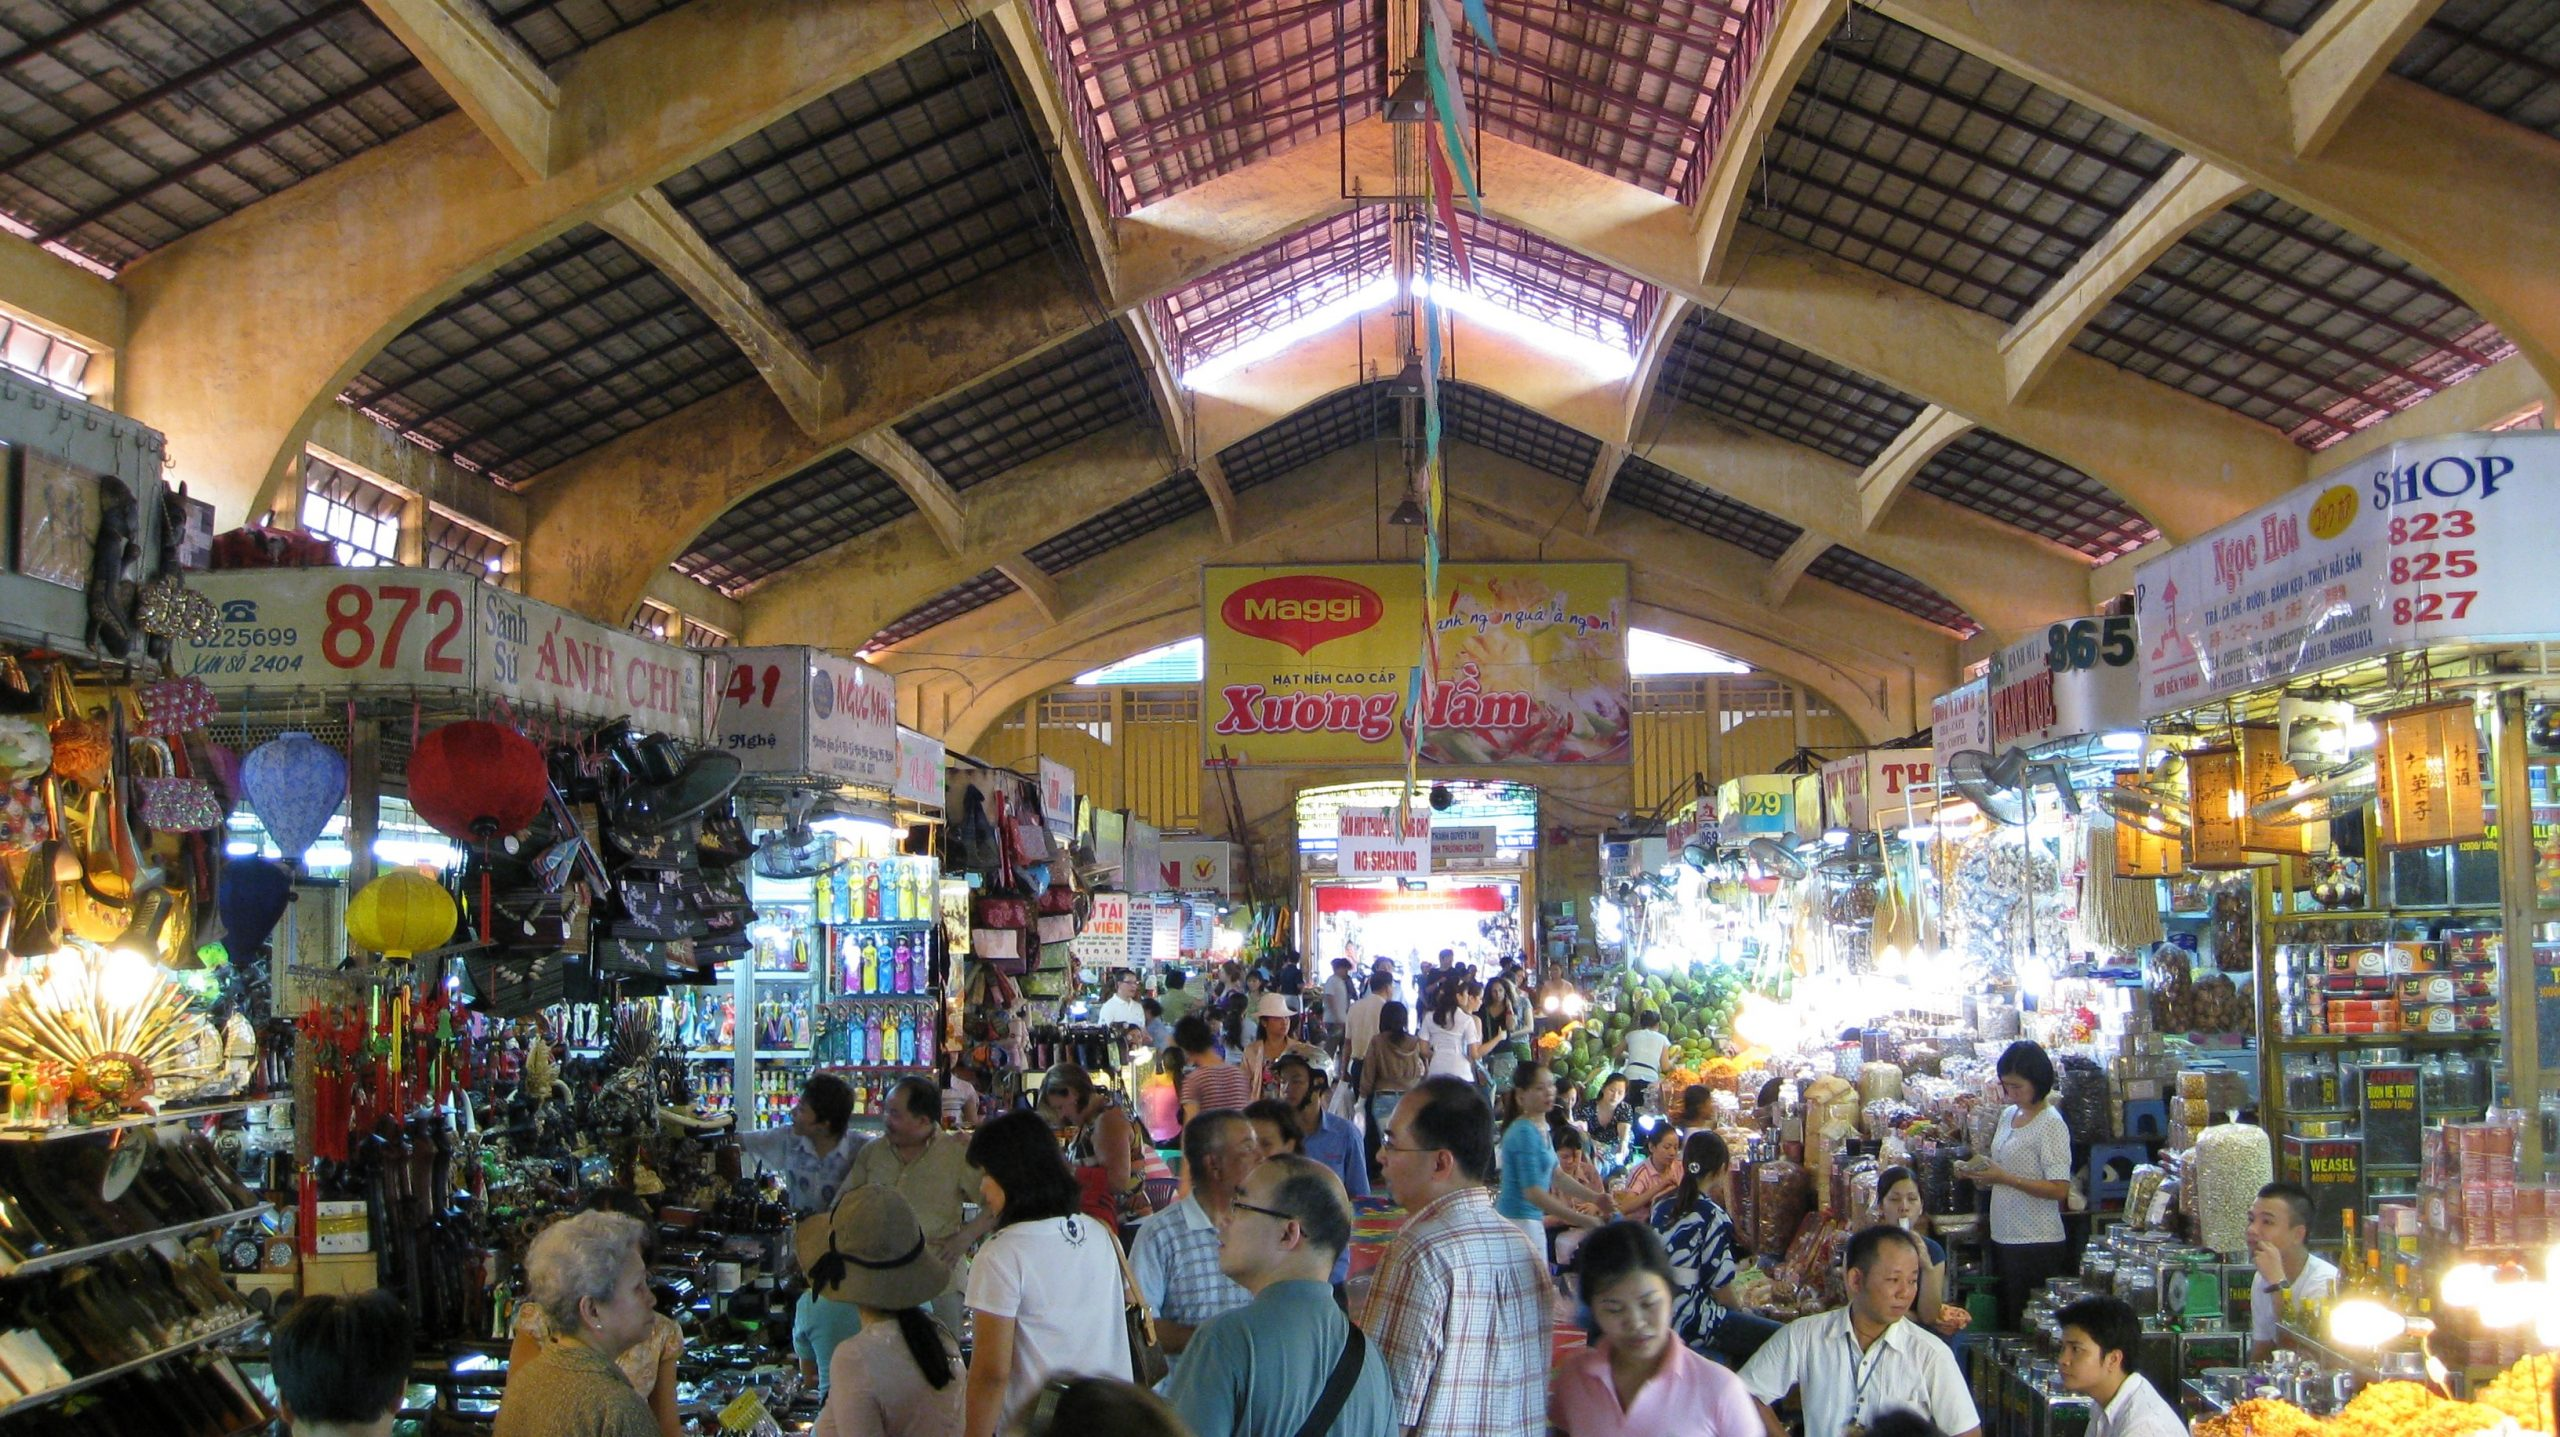 Ho Chi Minh's Most Famous Shopping-Ben Thanh Market